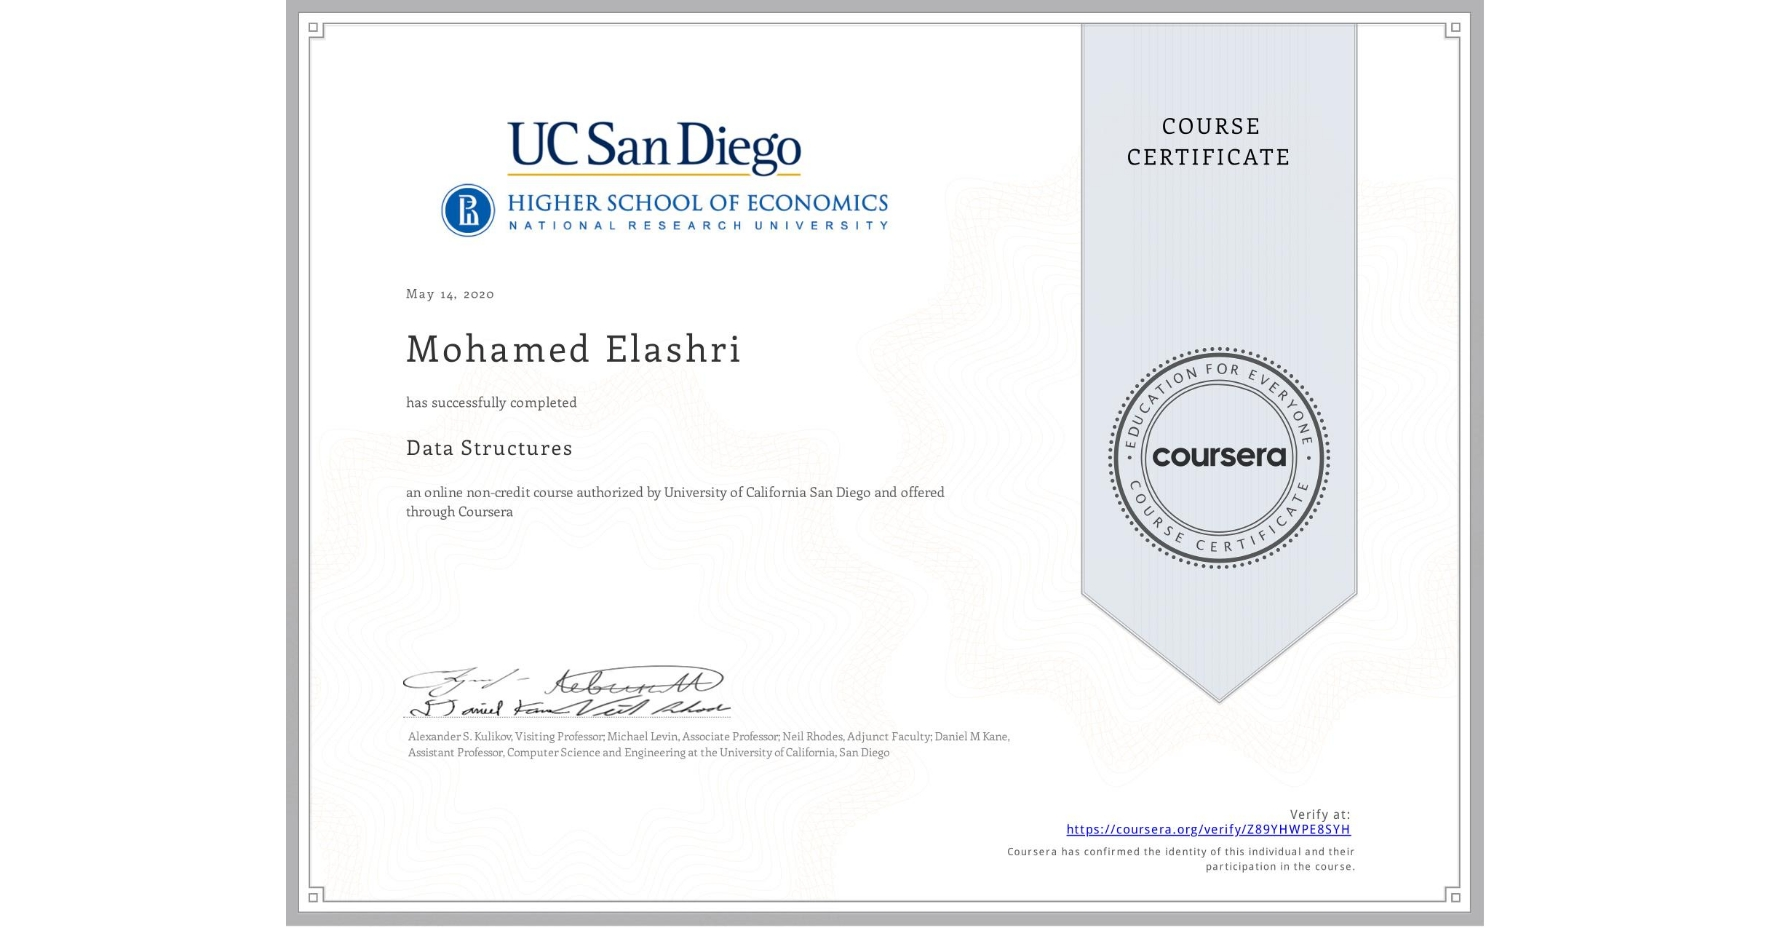 View certificate for Mohamed Elashri, Data Structures, an online non-credit course authorized by University of California San Diego & National Research University Higher School of Economics and offered through Coursera